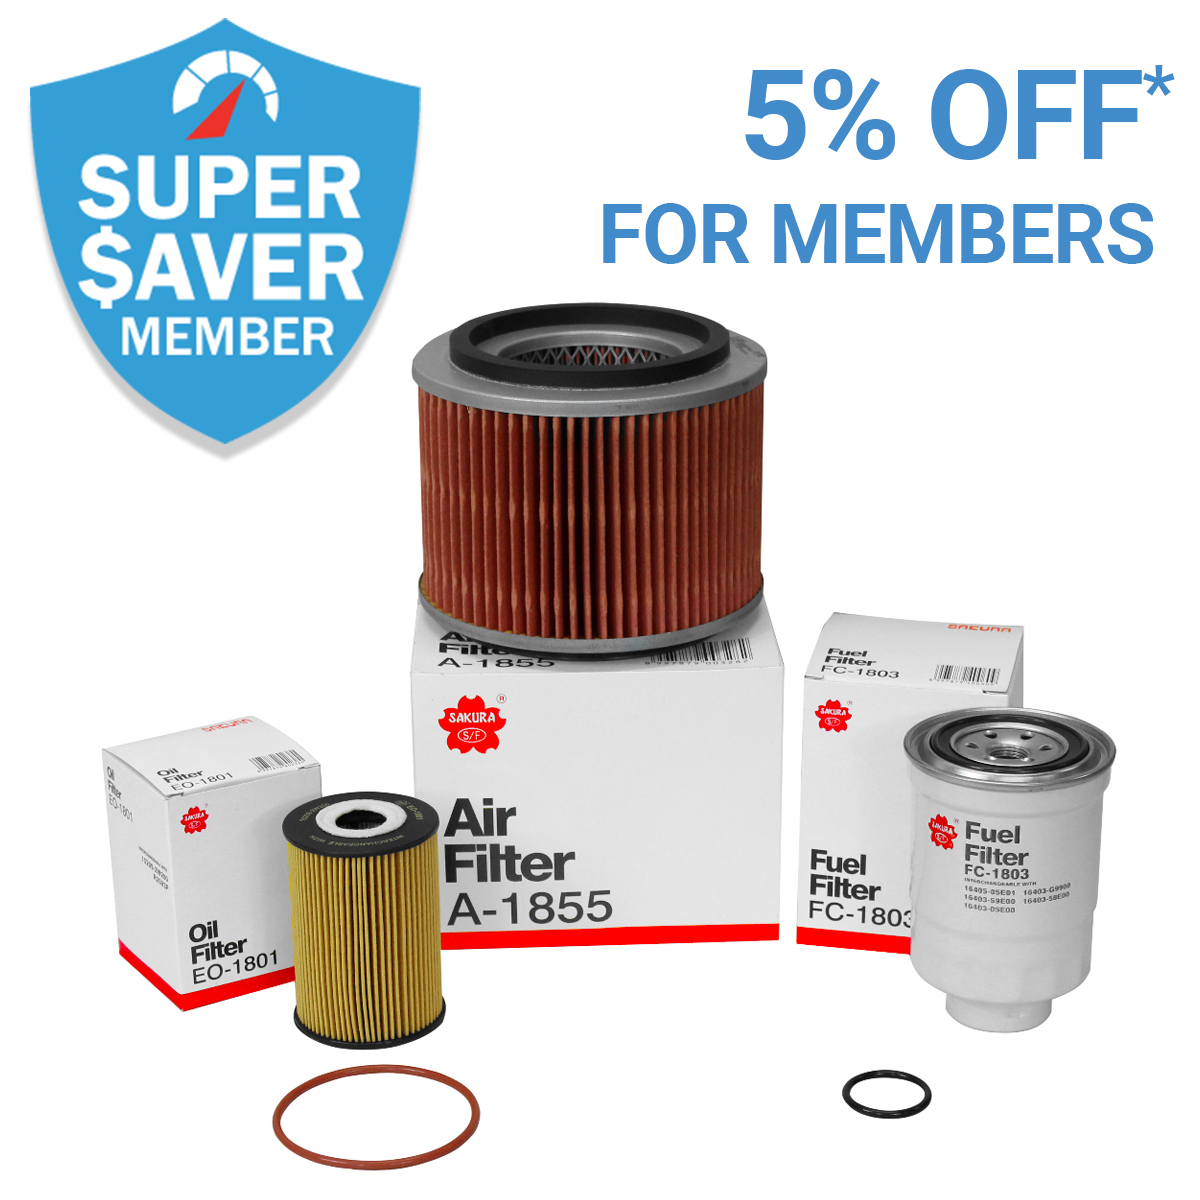 5% Off* Filters For Members